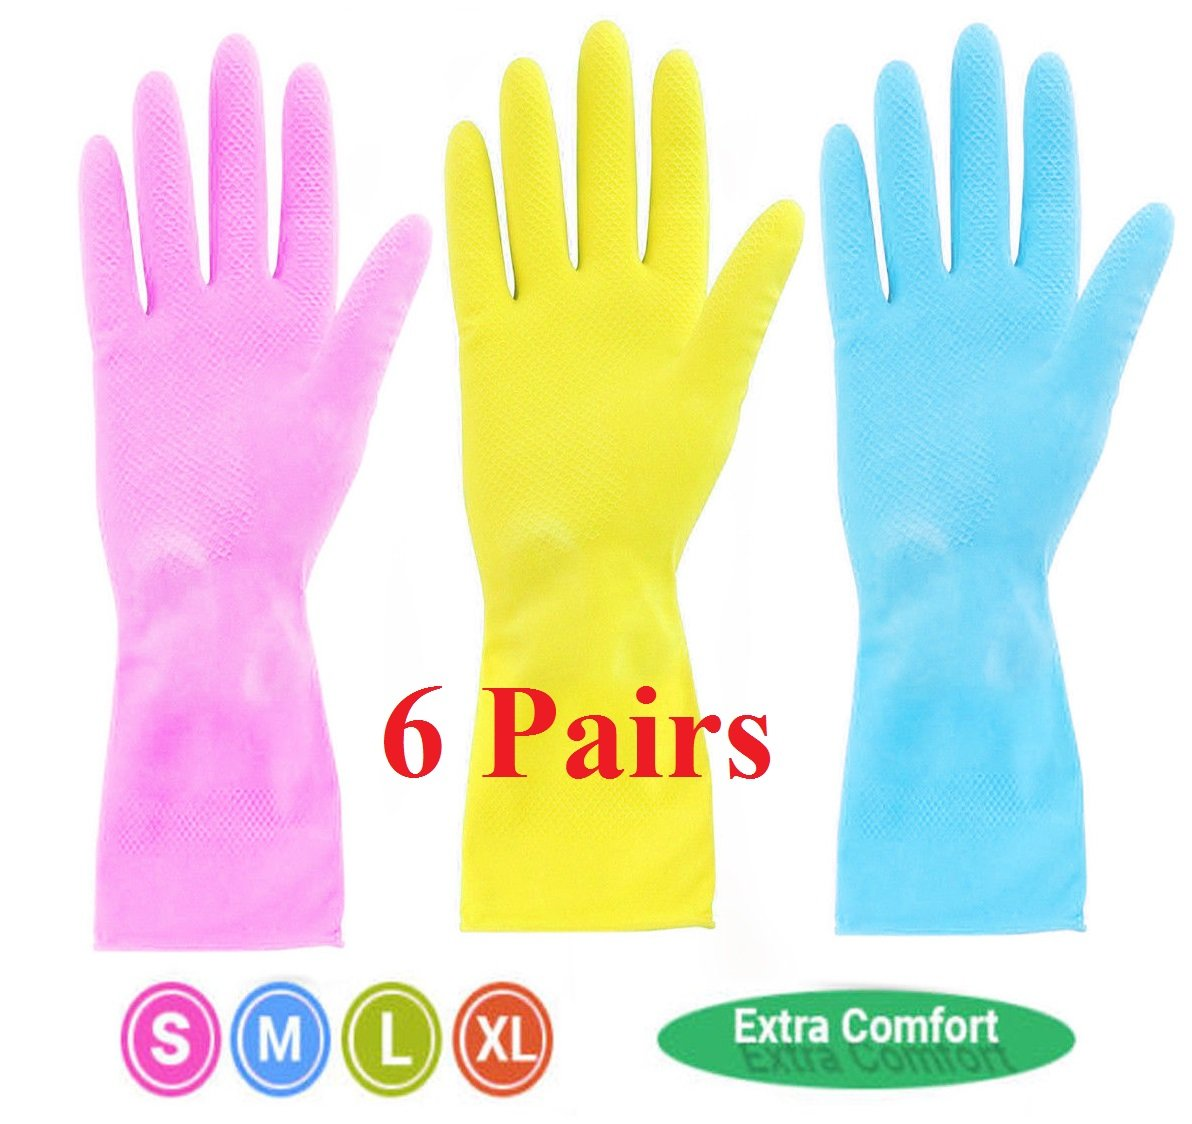 6 Pairs Pink Strong Household Rubber Gloves Long Sleeve Washing up Cleaning Gloves Kitchen (Pink, Small-7) Toyo